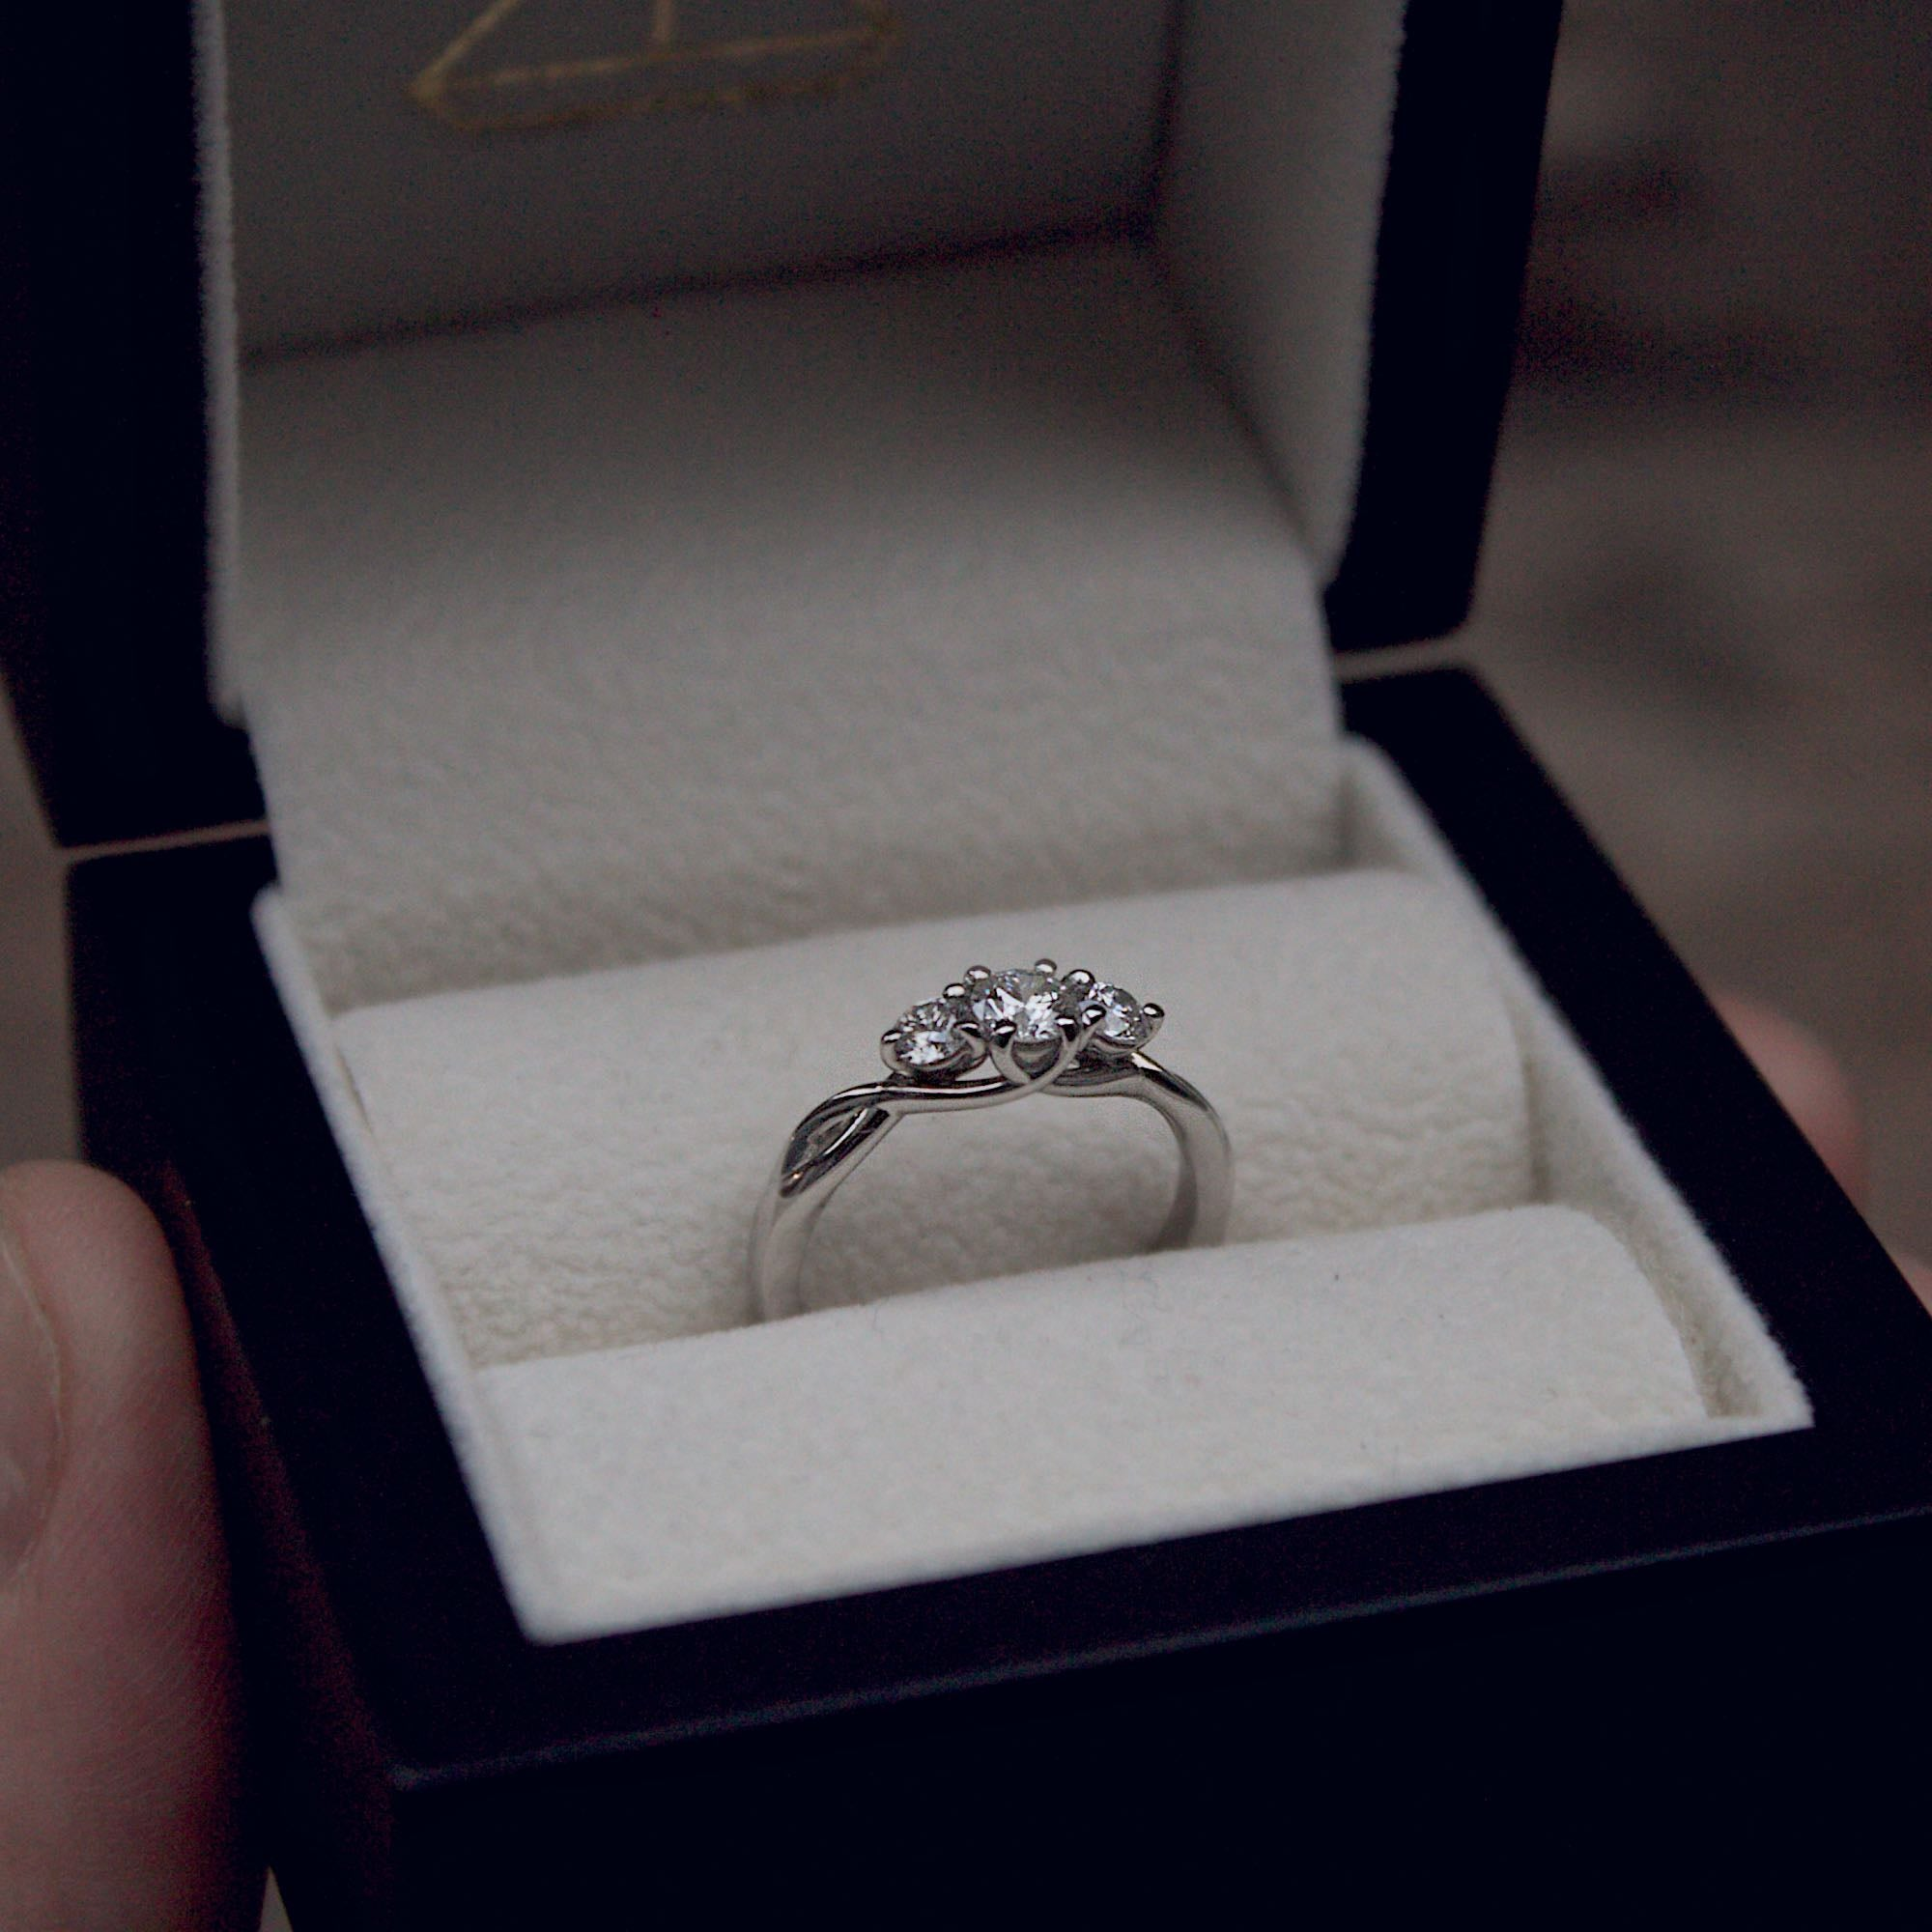 Trilogy rings are without a doubt my most popular design for engagement rings. Whether it's a diamond in the middle or